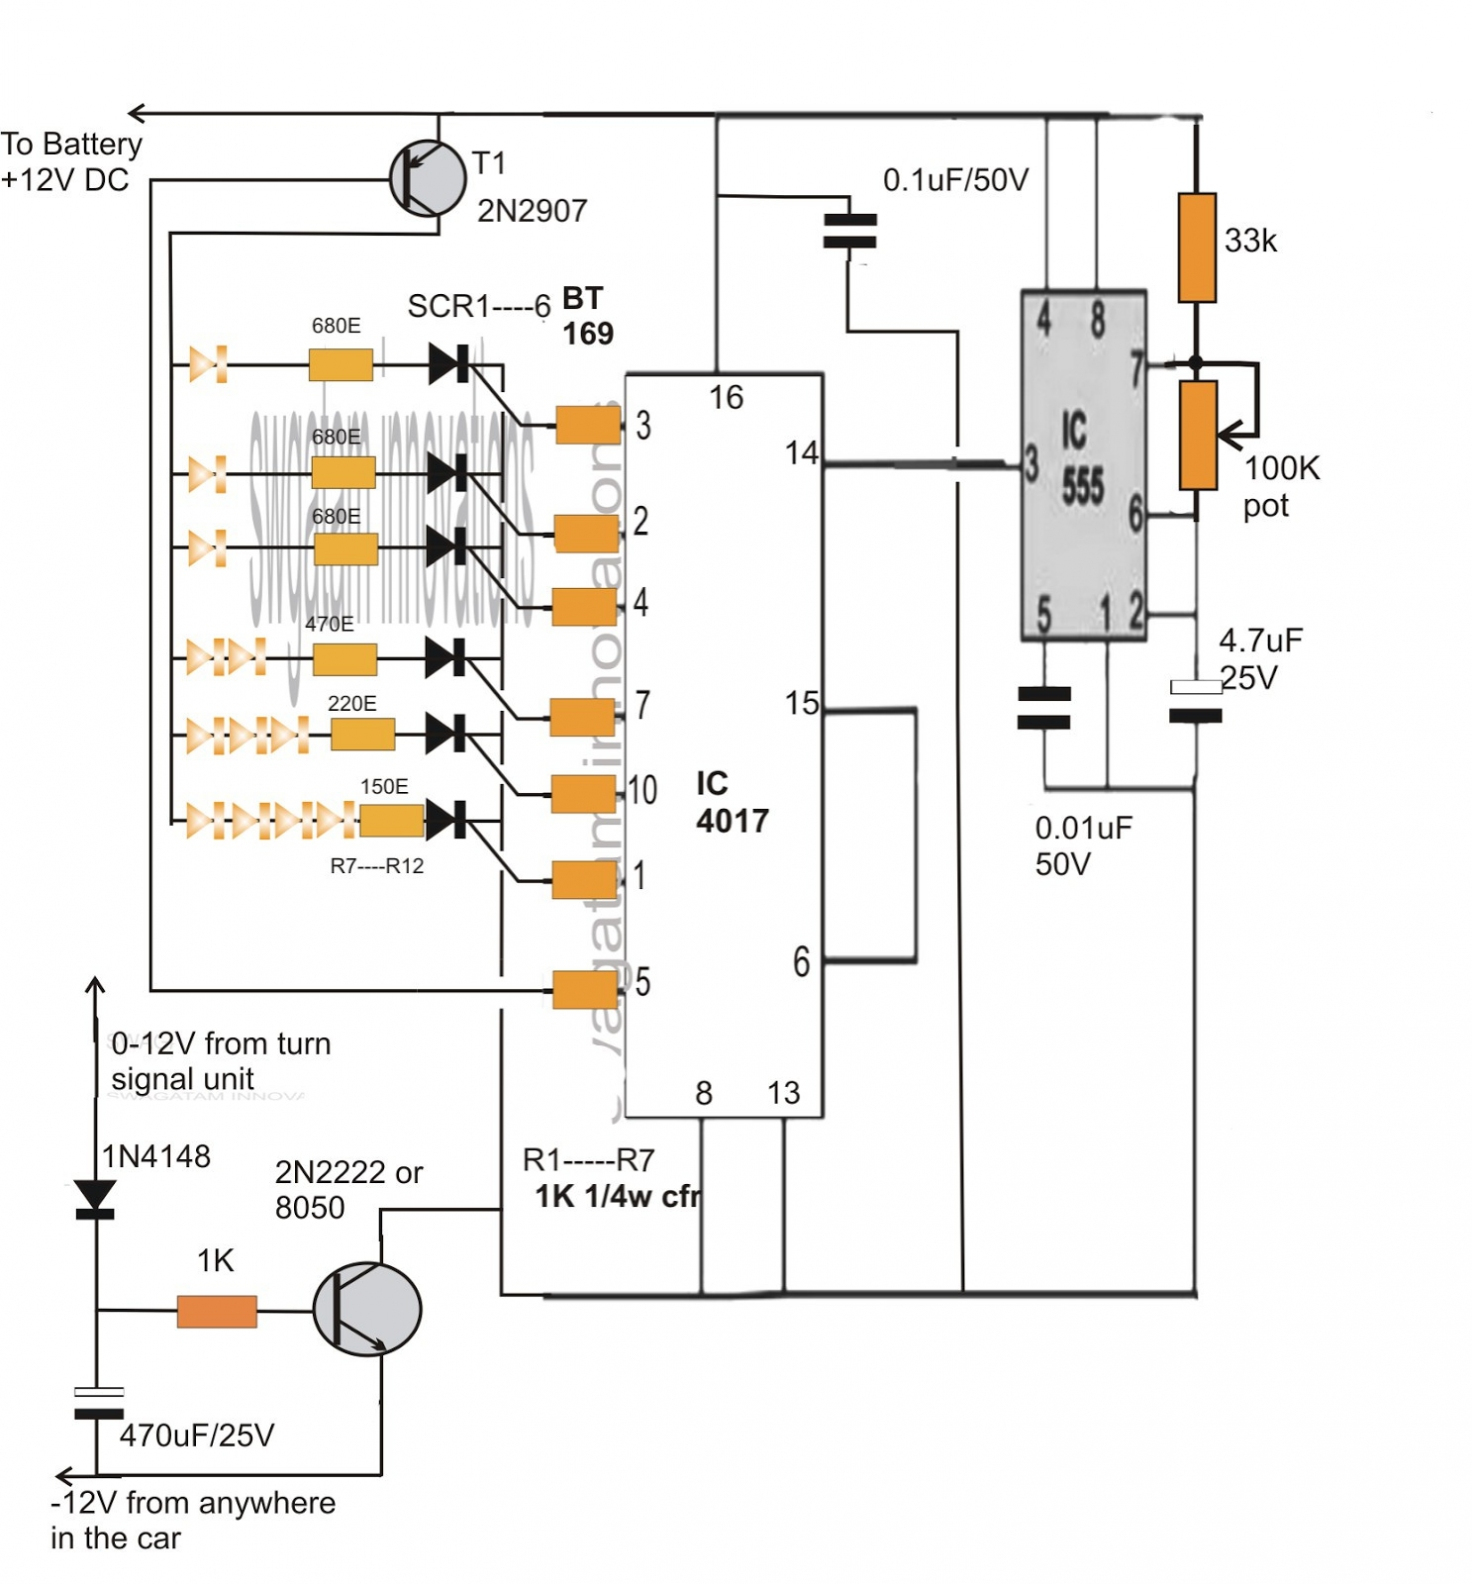 3 Wire Led Light Bar Wiring Diagram | Wiring Library - 3 Pin Flasher Relay Wiring Diagram